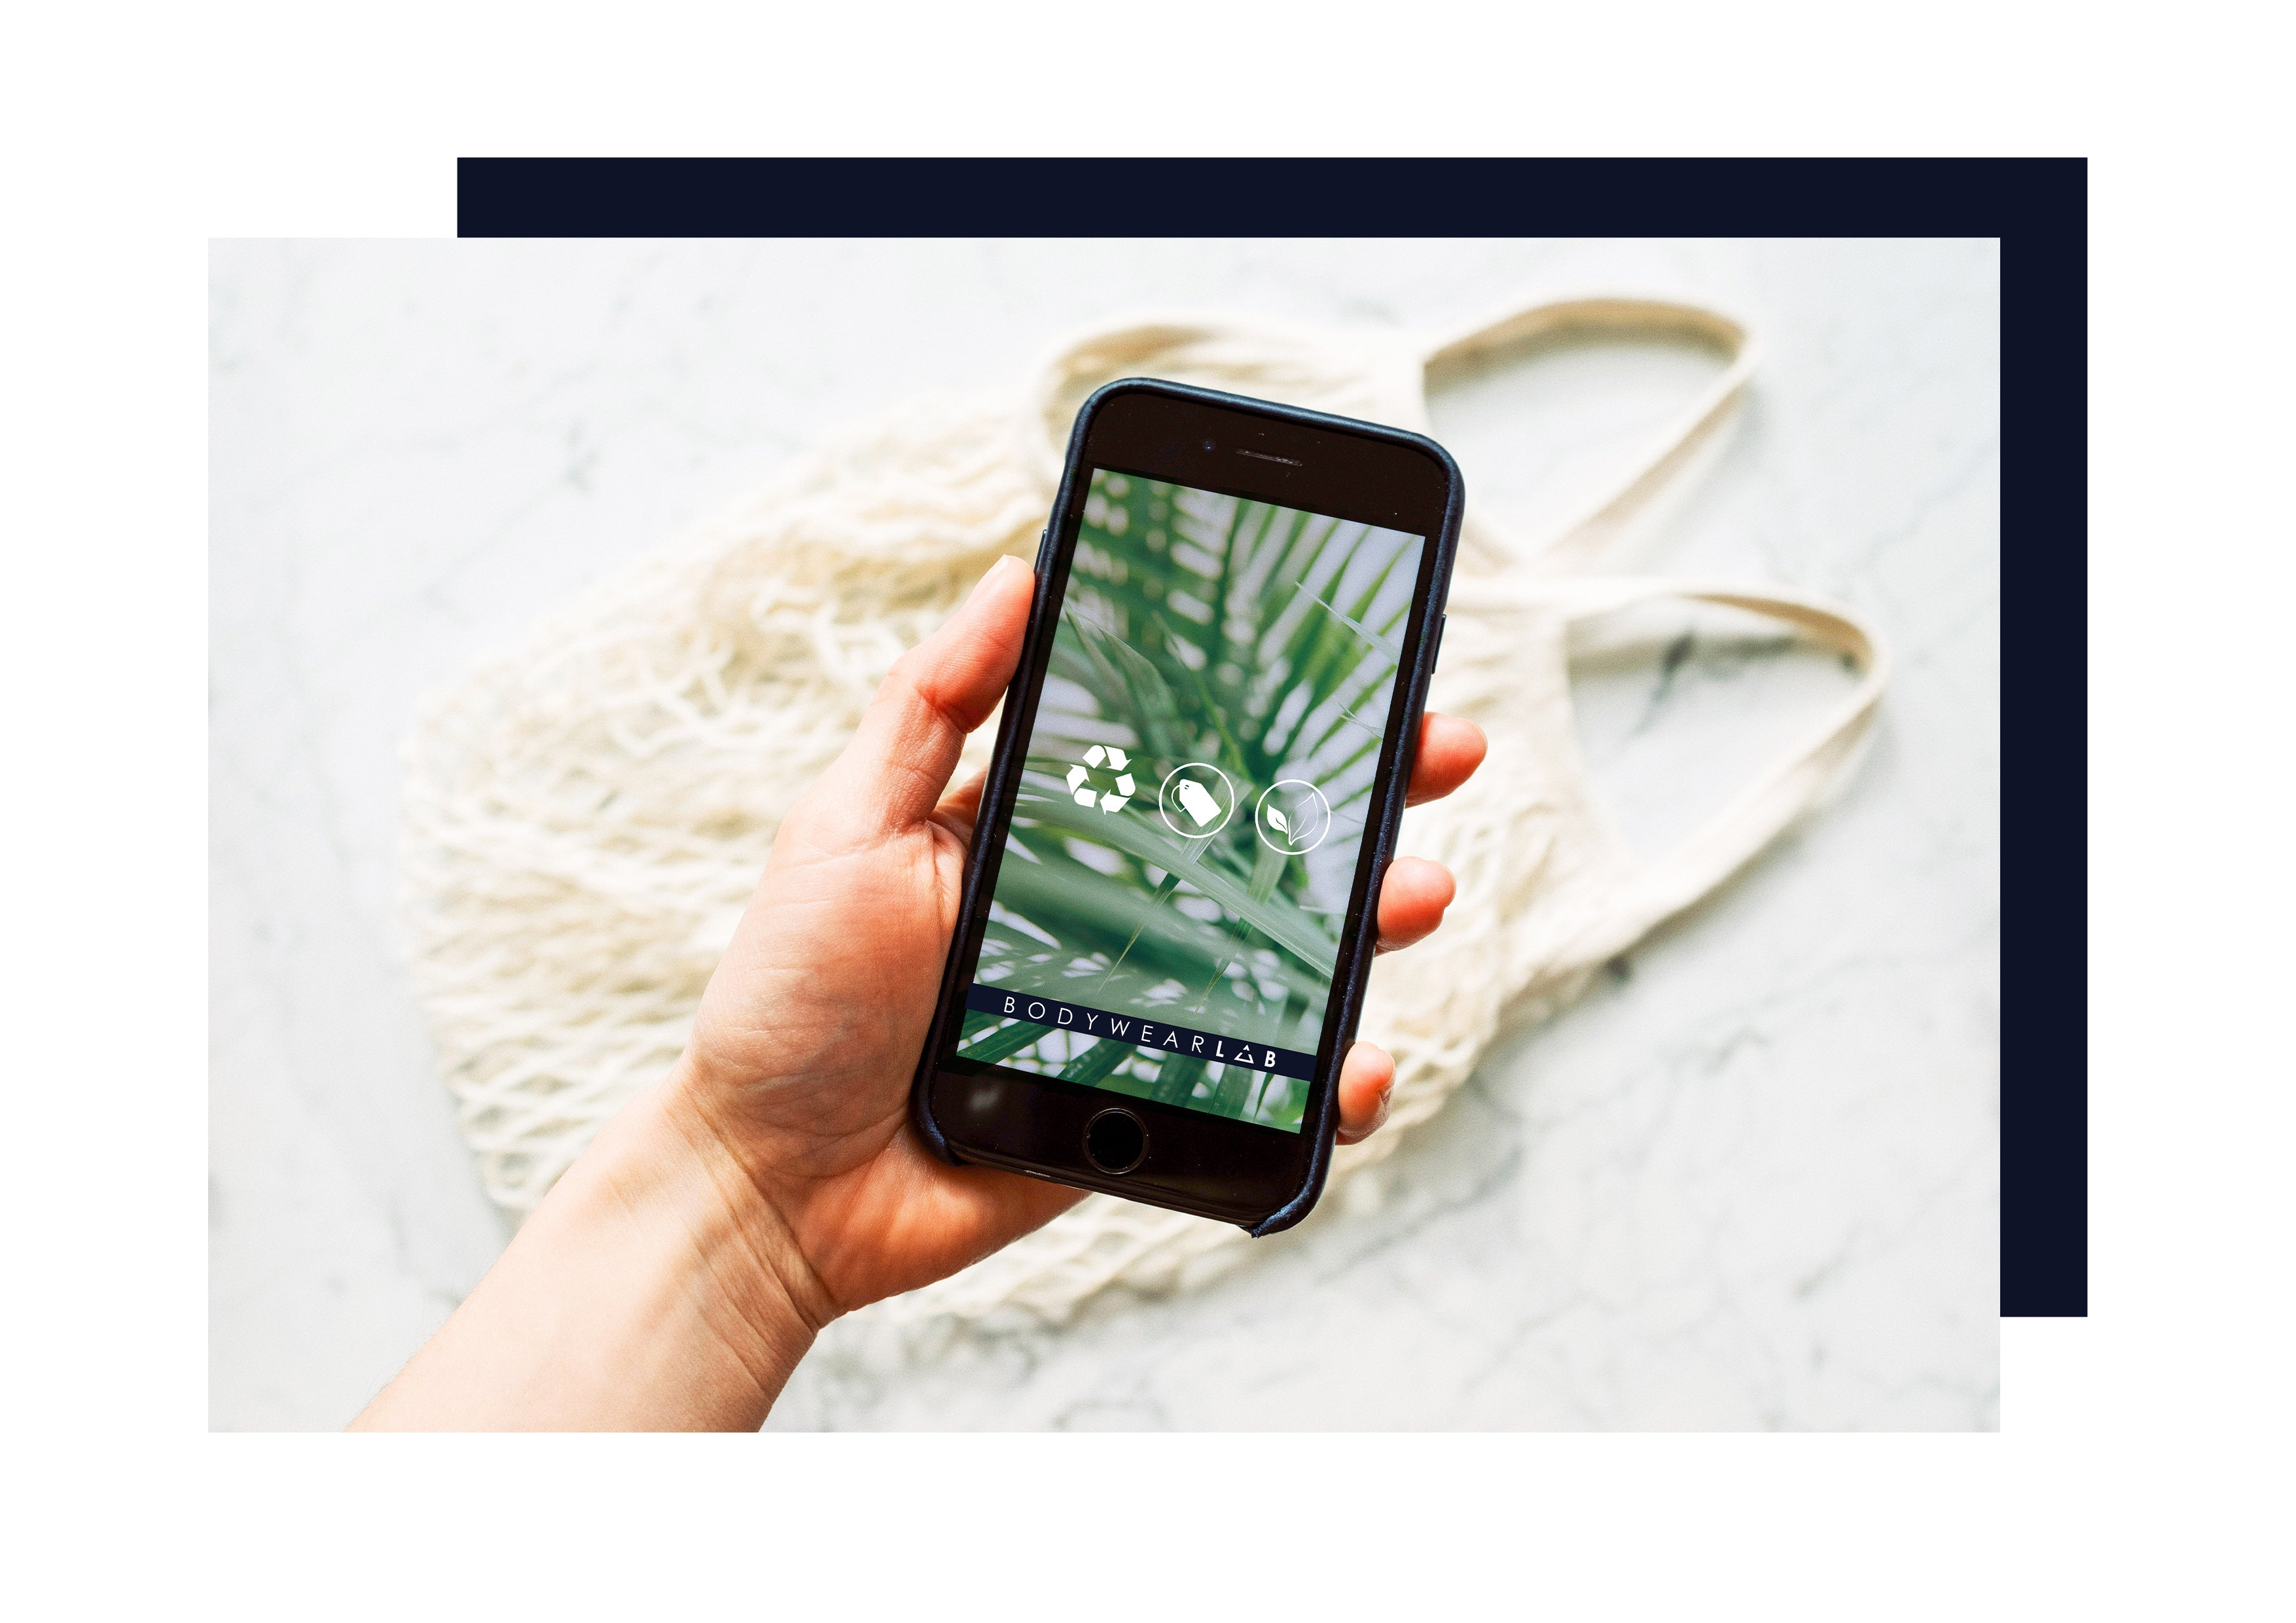 A mobile phone with a palm leaf and sustainable symbol background, in front of a sustainable shopping bag.